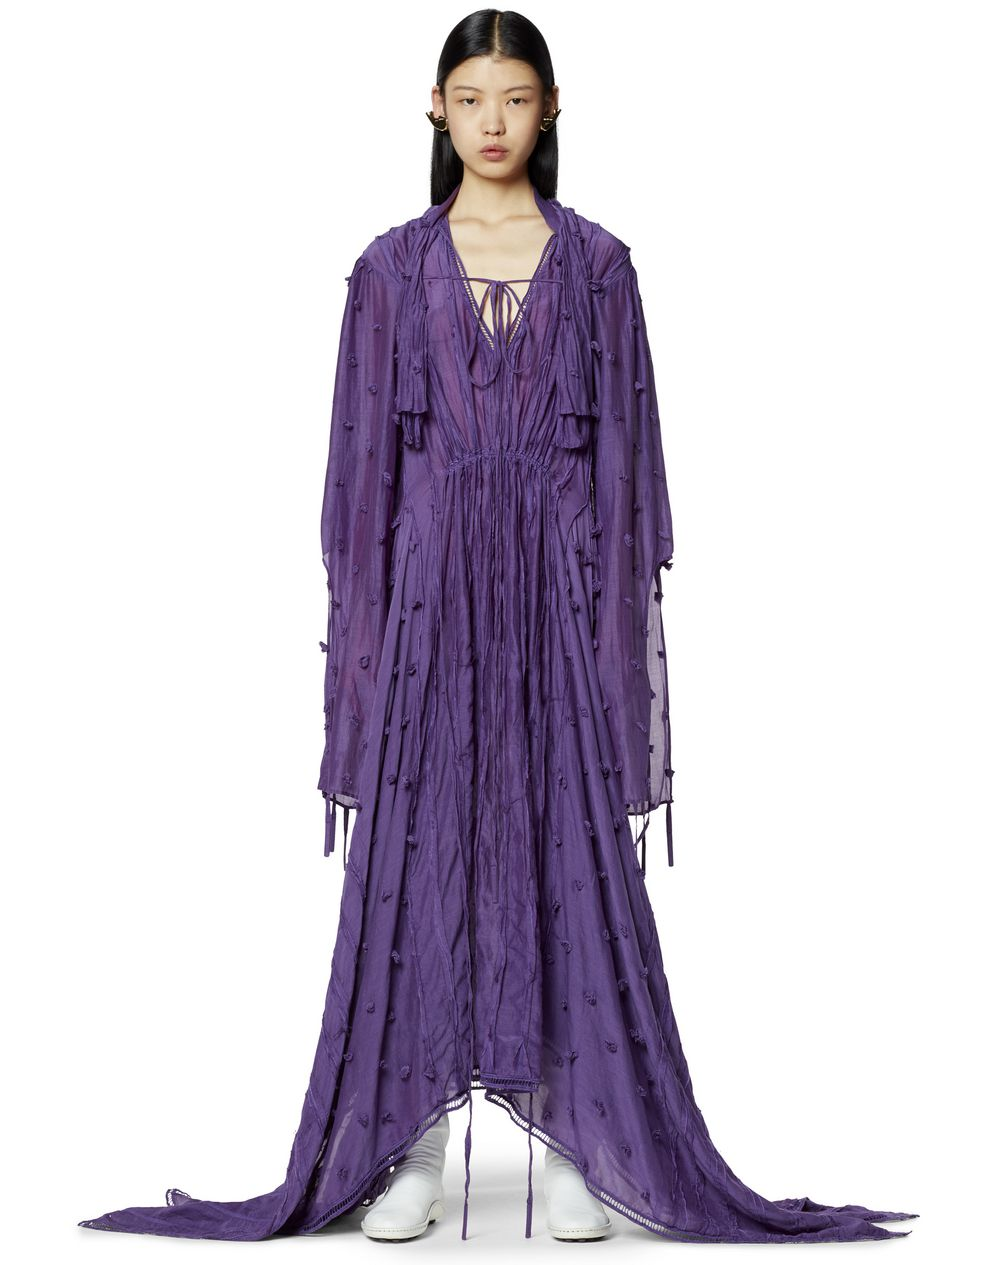 LONG ASYMMETRICAL DRESS IN COTTON AND SILK - Lanvin